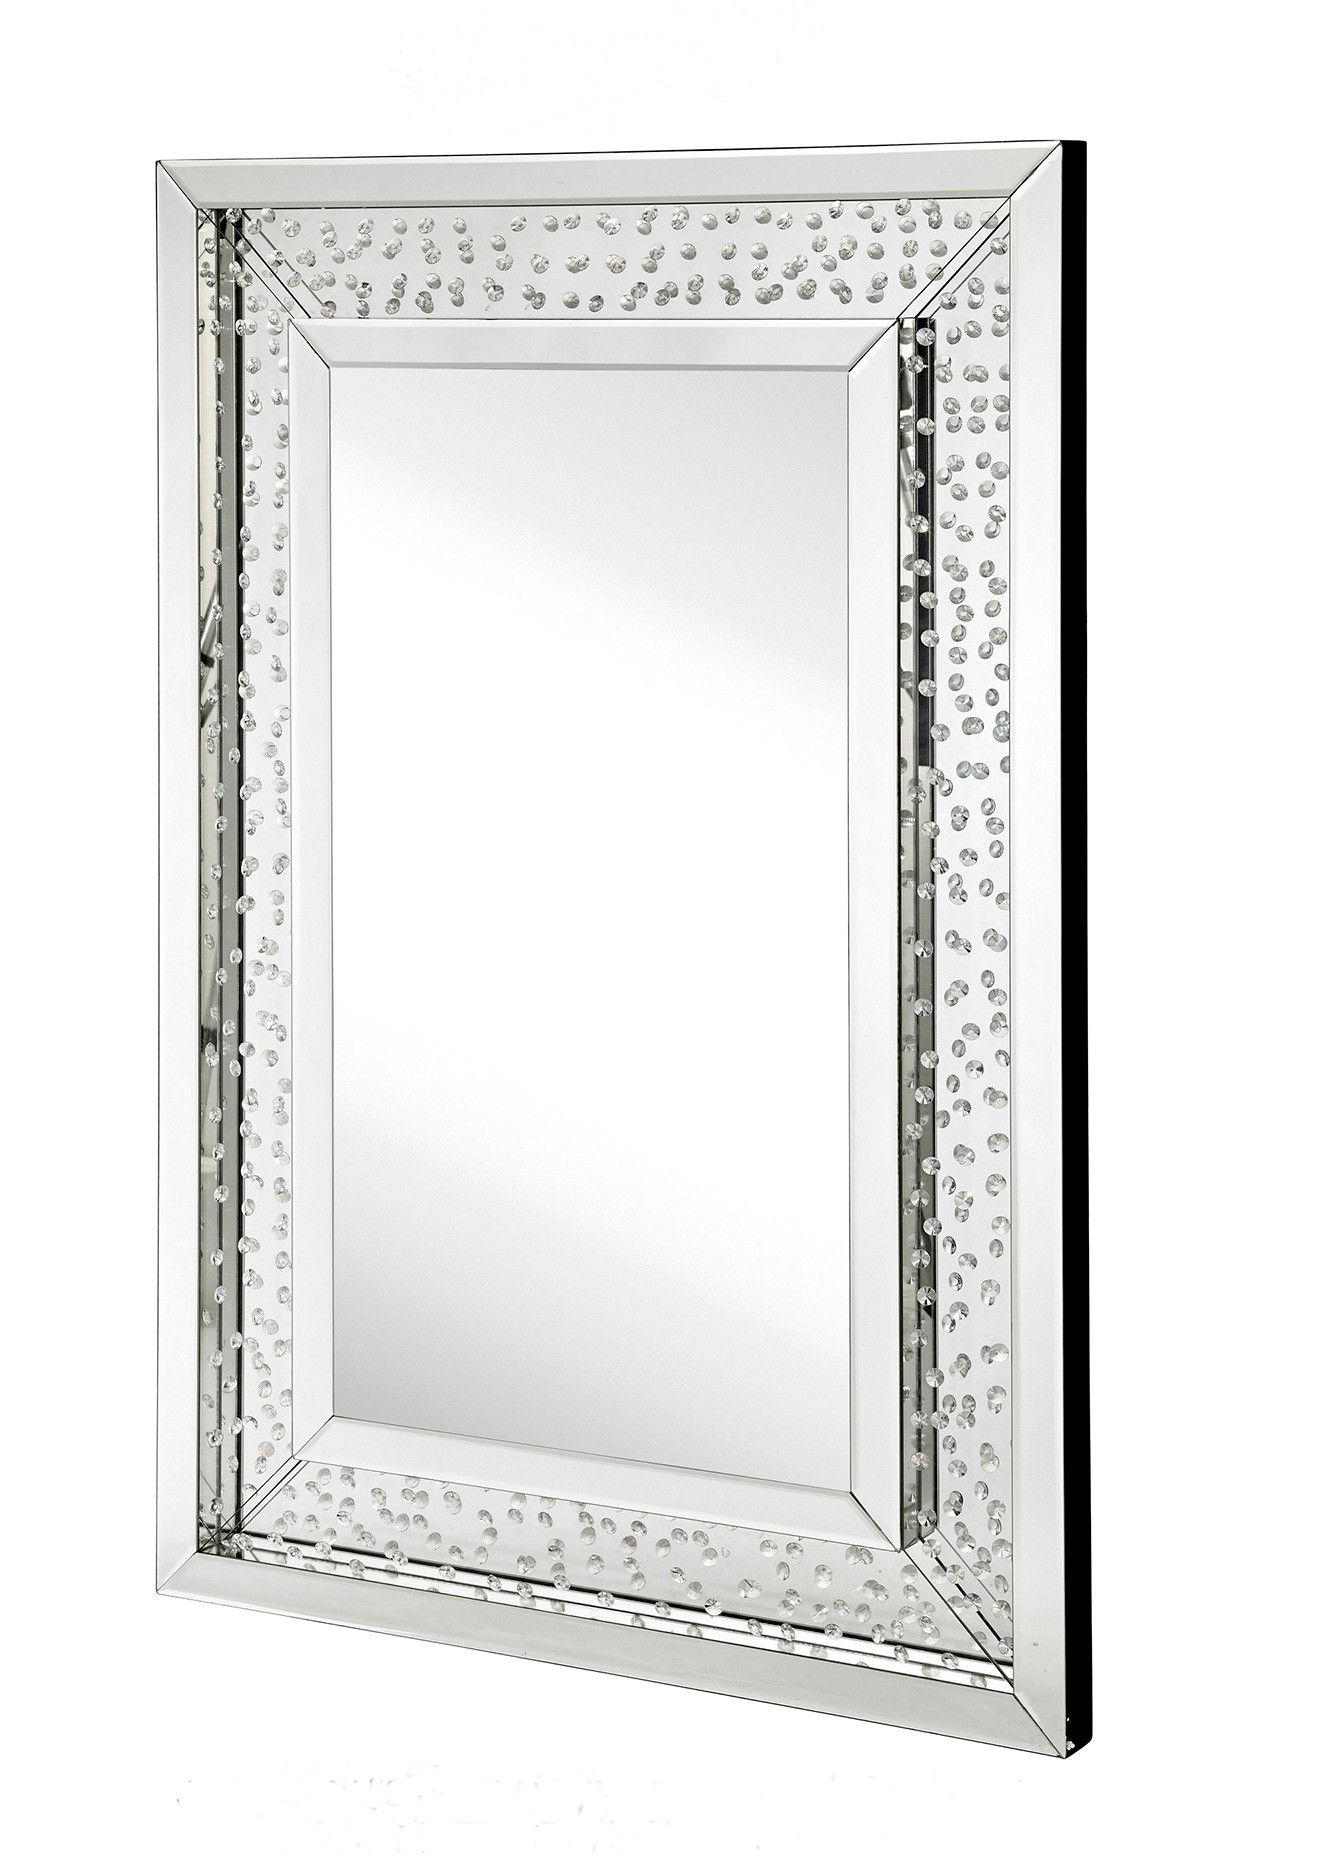 2020 Floating Crystal – Floating Crystal Rectangle Wall Mirror Pertaining To Crystal Wall Mirrors (View 2 of 20)